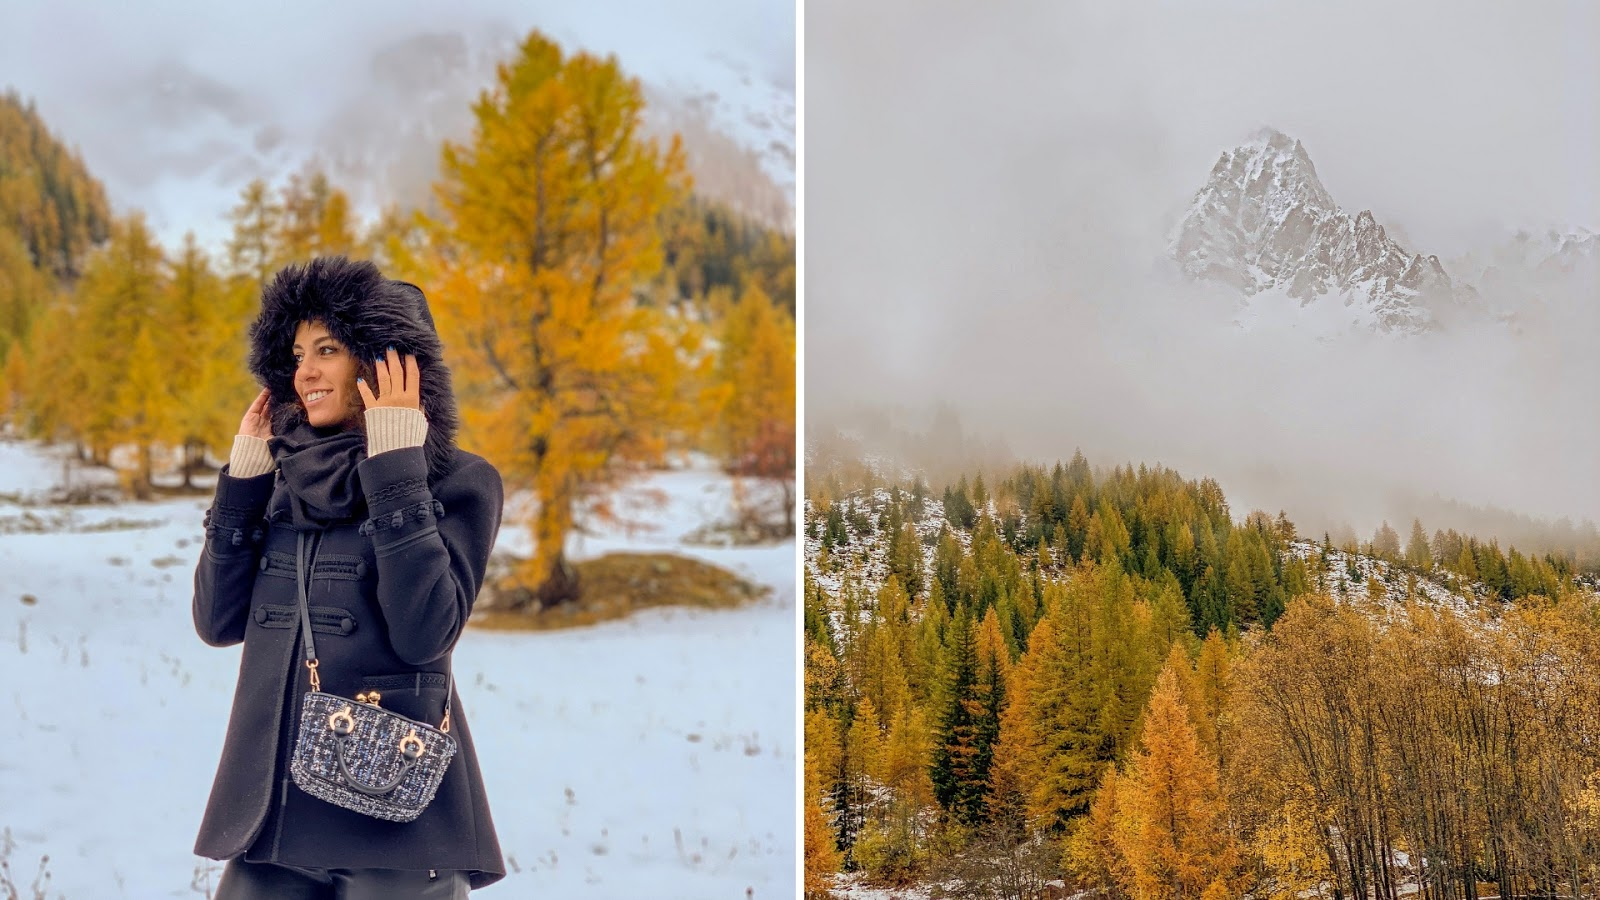 week end autunnale a Courmayeur monte bianco, autunno a Courmayeur, valentina rago, fashion need, fashion blog Italia